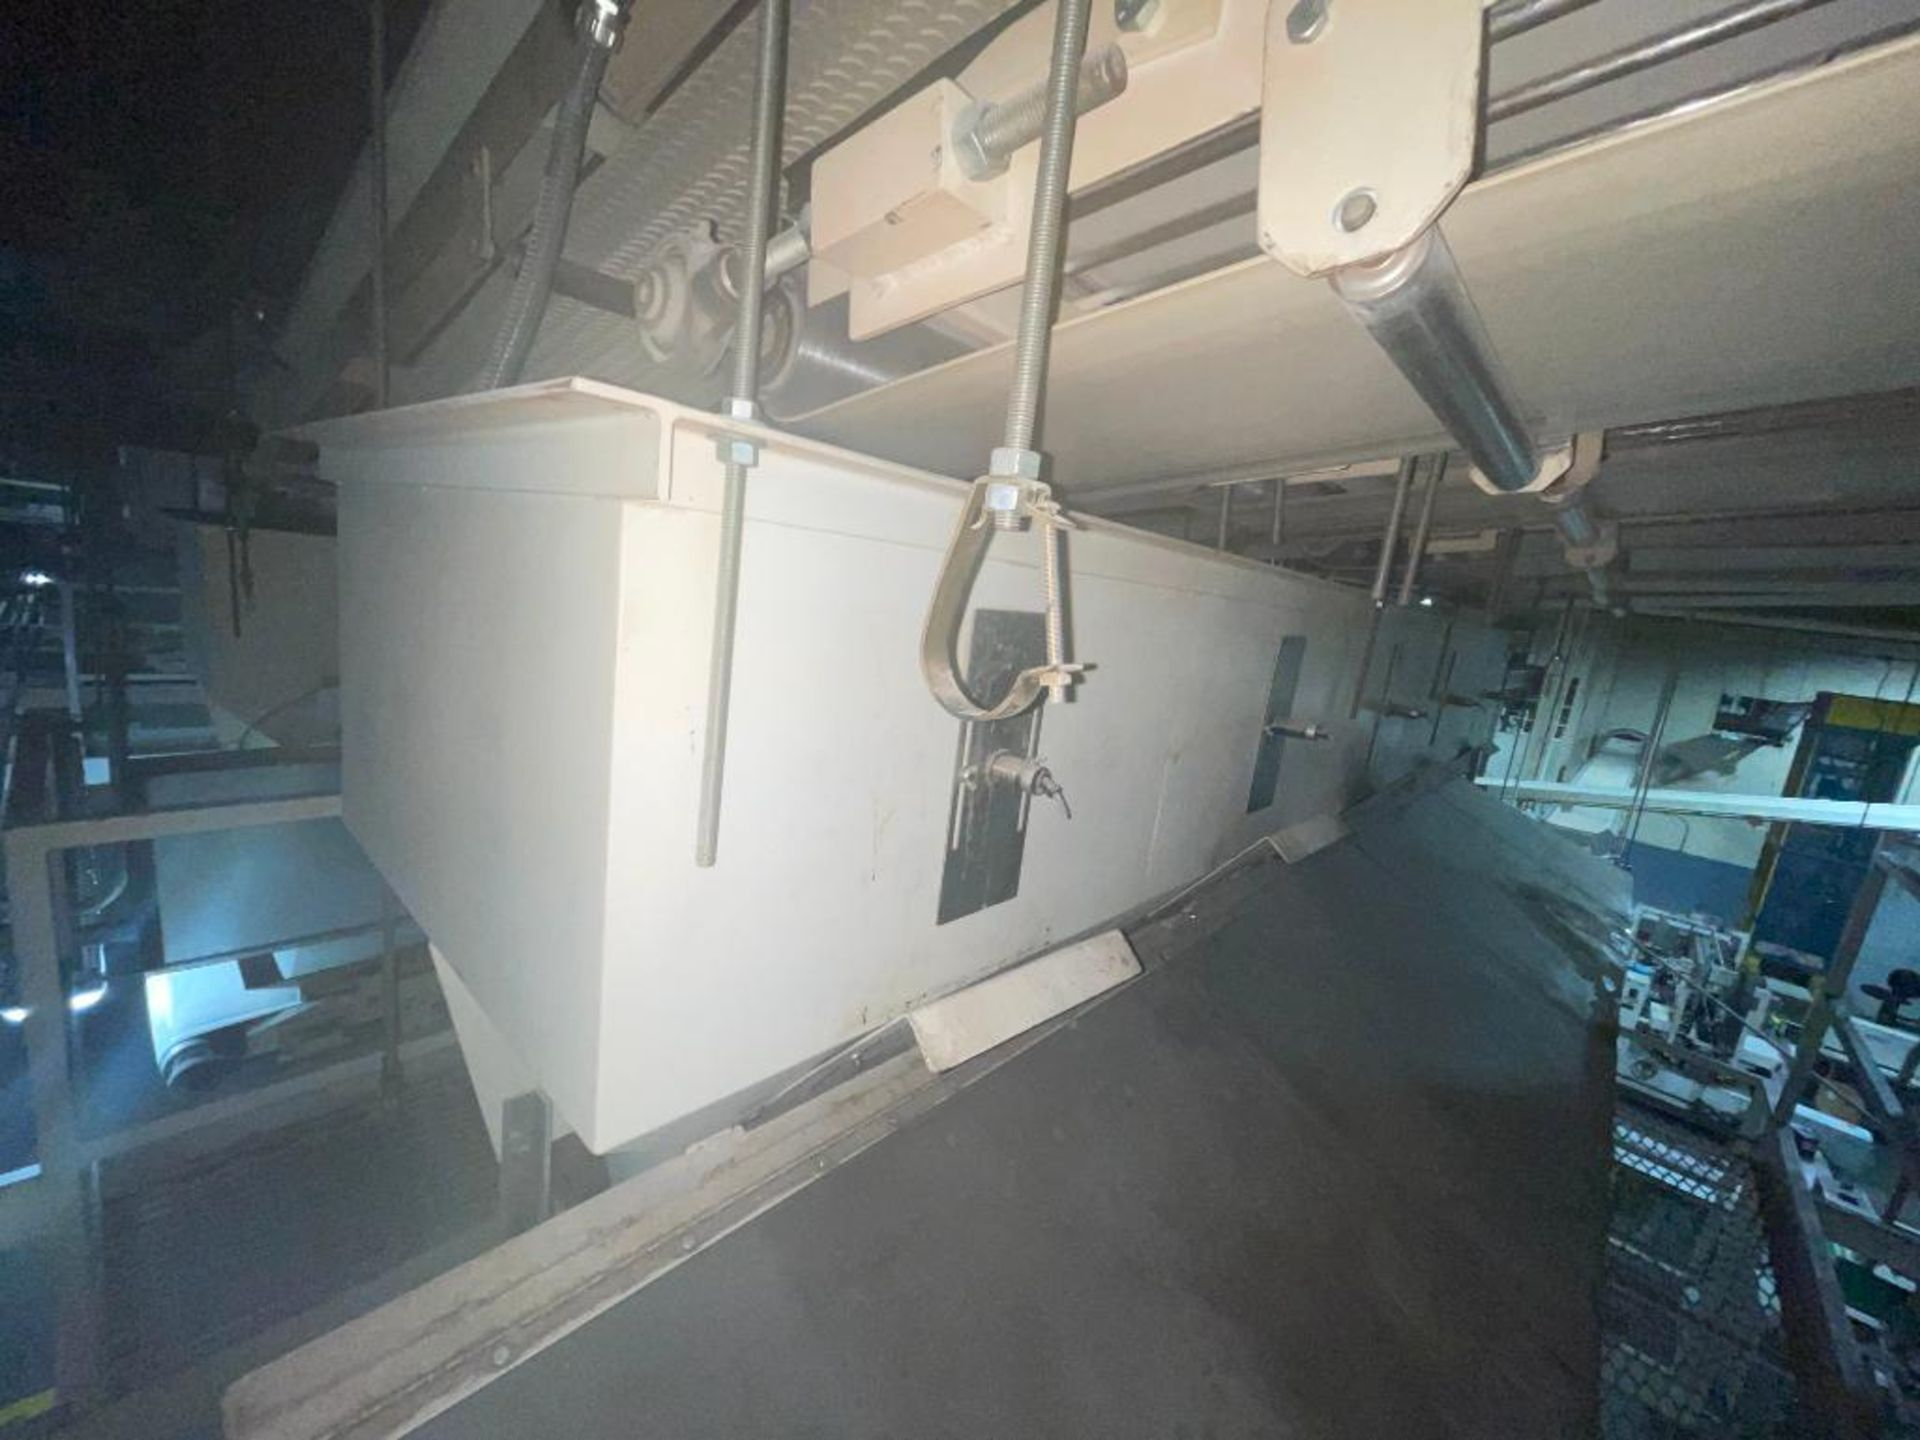 Aseeco 5-bin blending system with 5 Syntron vibratory feeders on bottom